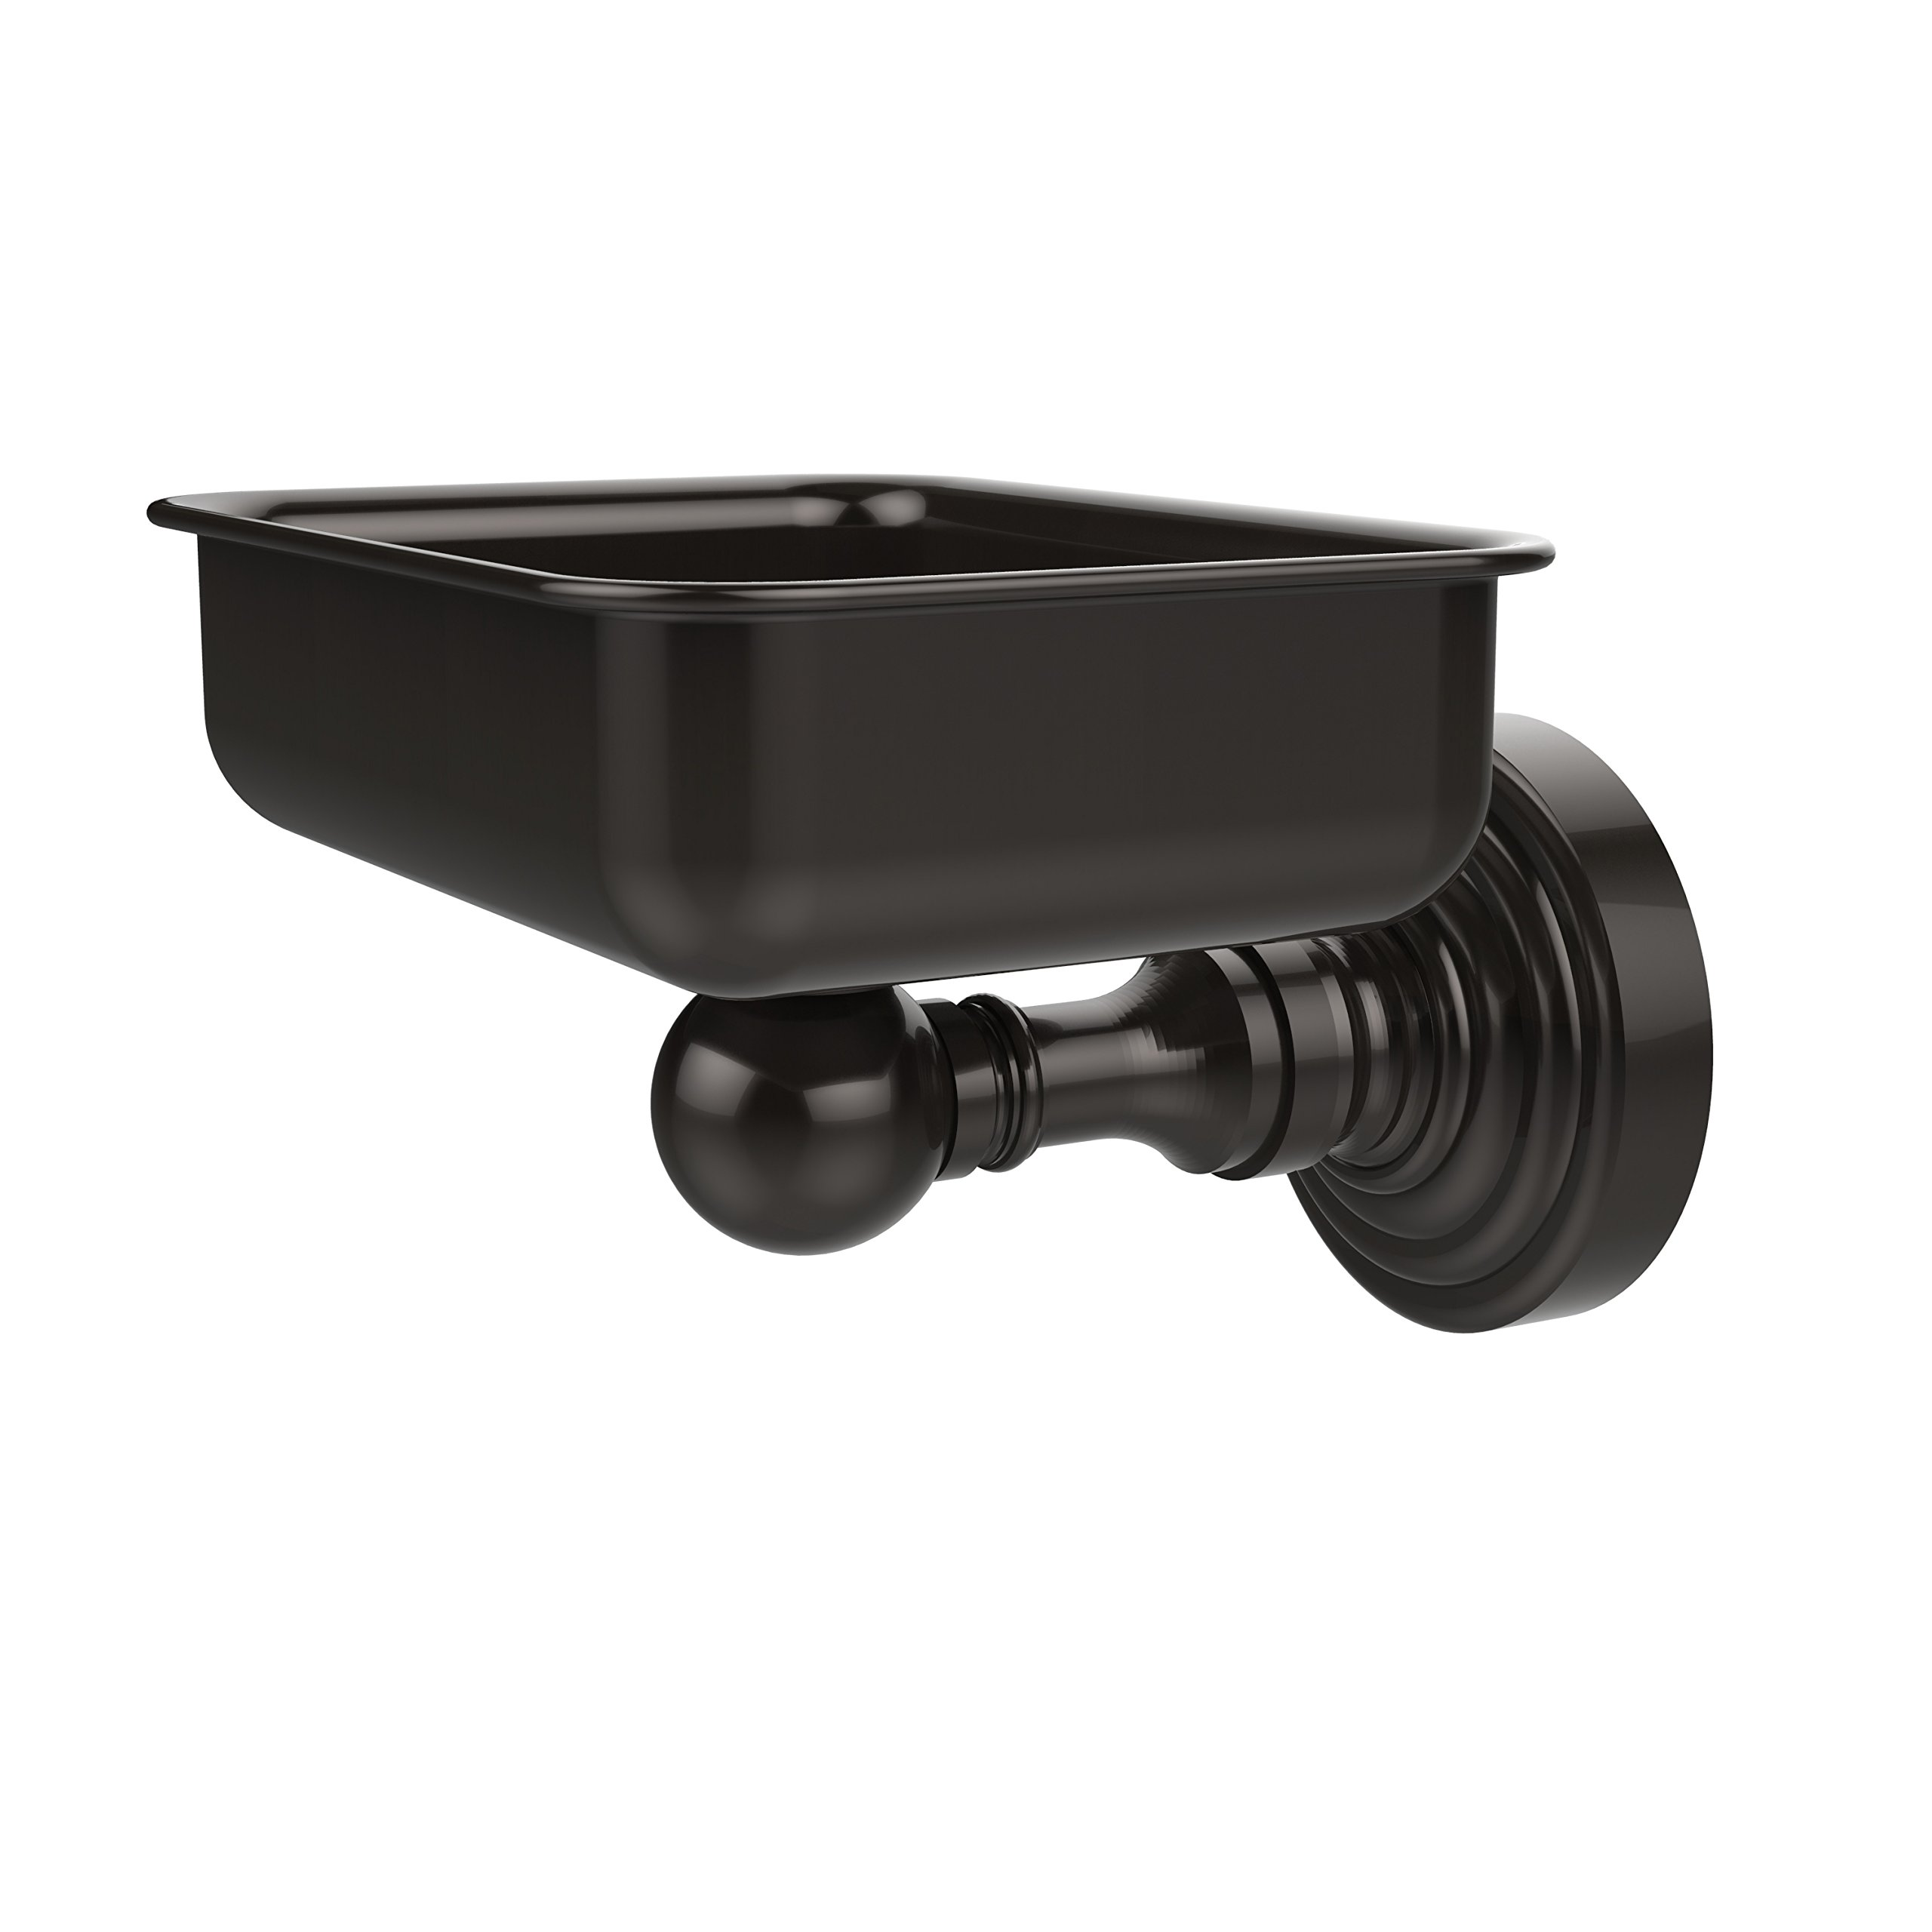 Allied Brass WP-32-ORB Soap Dish with Glass Liner, Oil Rubbed Bronze